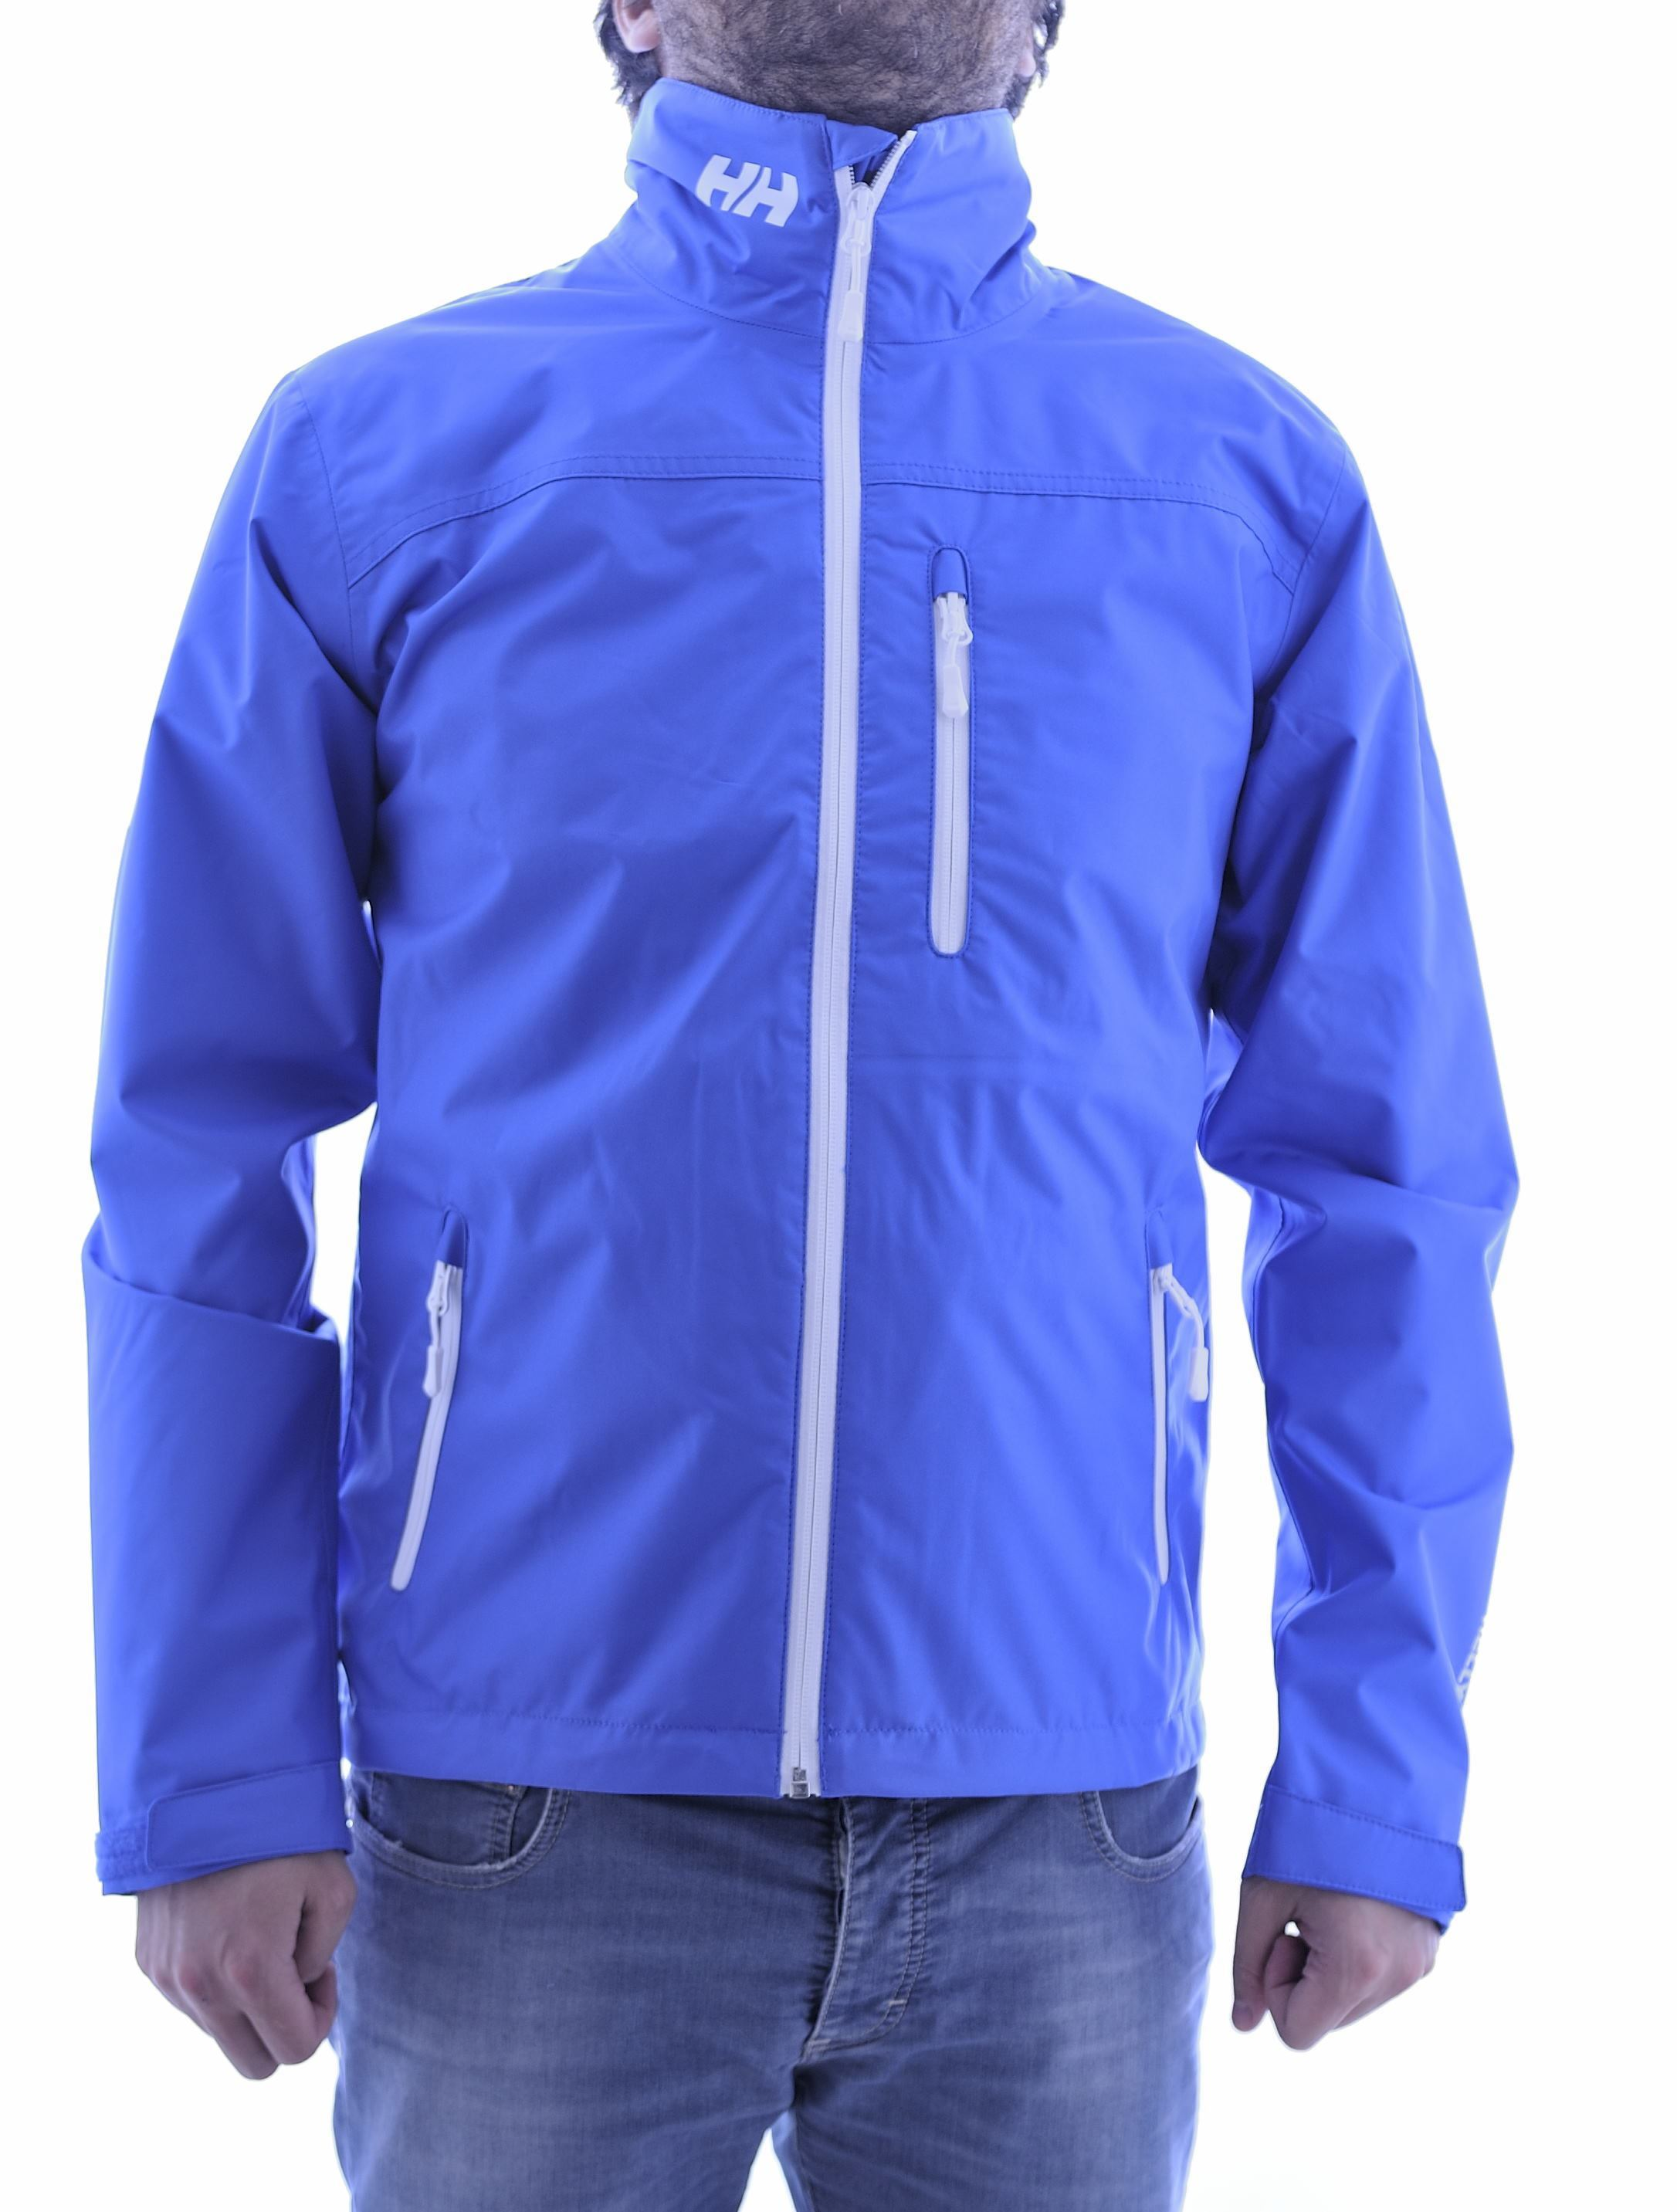 Immagine di CREW JACKET ROYAL BLUE